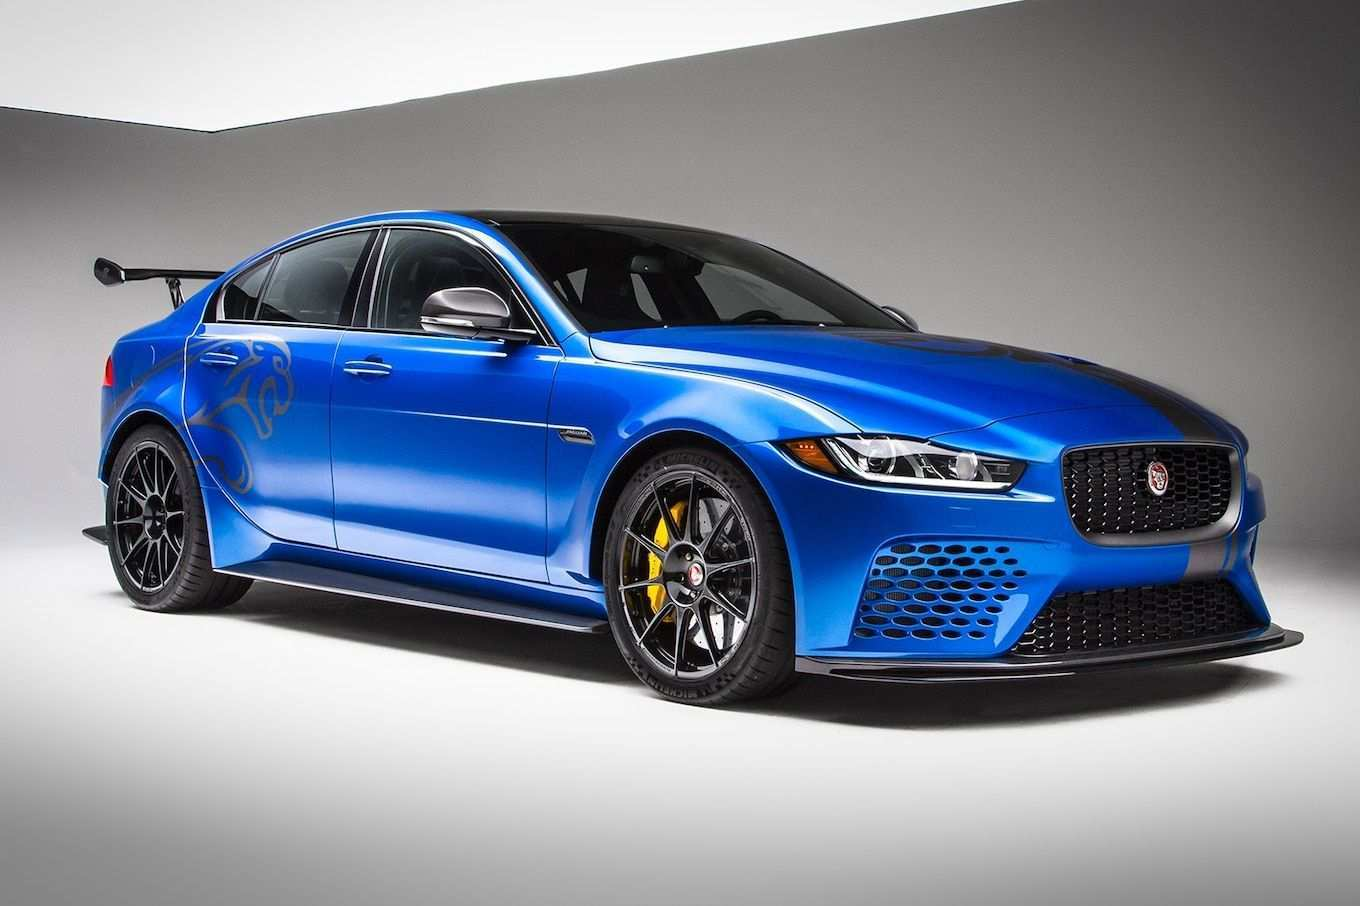 18 Gallery of 2019 Jaguar Project 8 Specs and Review for 2019 Jaguar Project 8